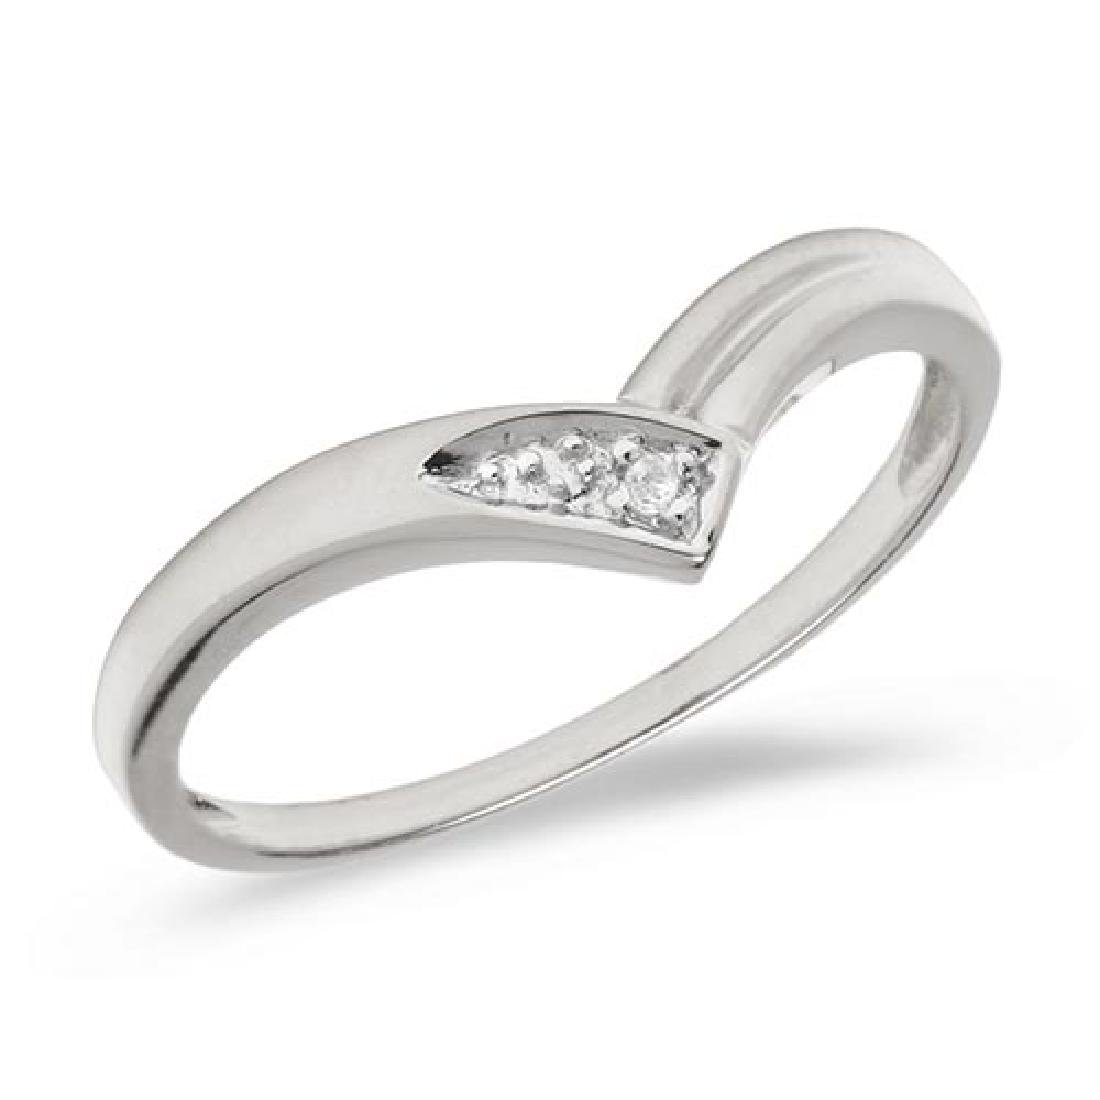 Certified 14K White Gold Diamond Chevron Ring